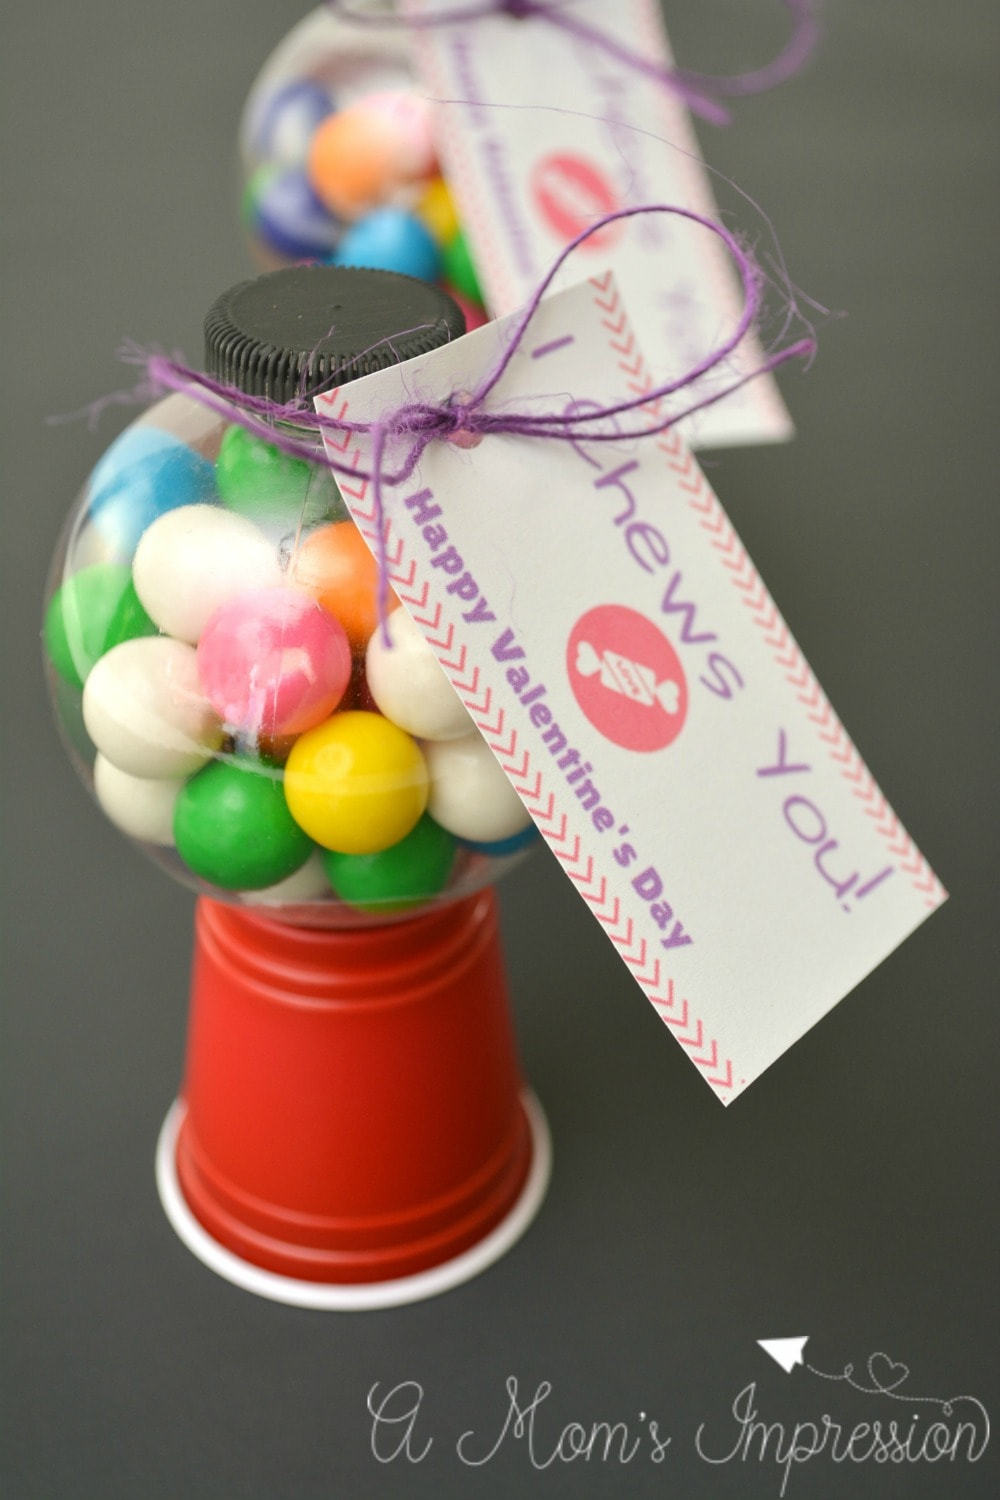 Homemade mini gumball machine